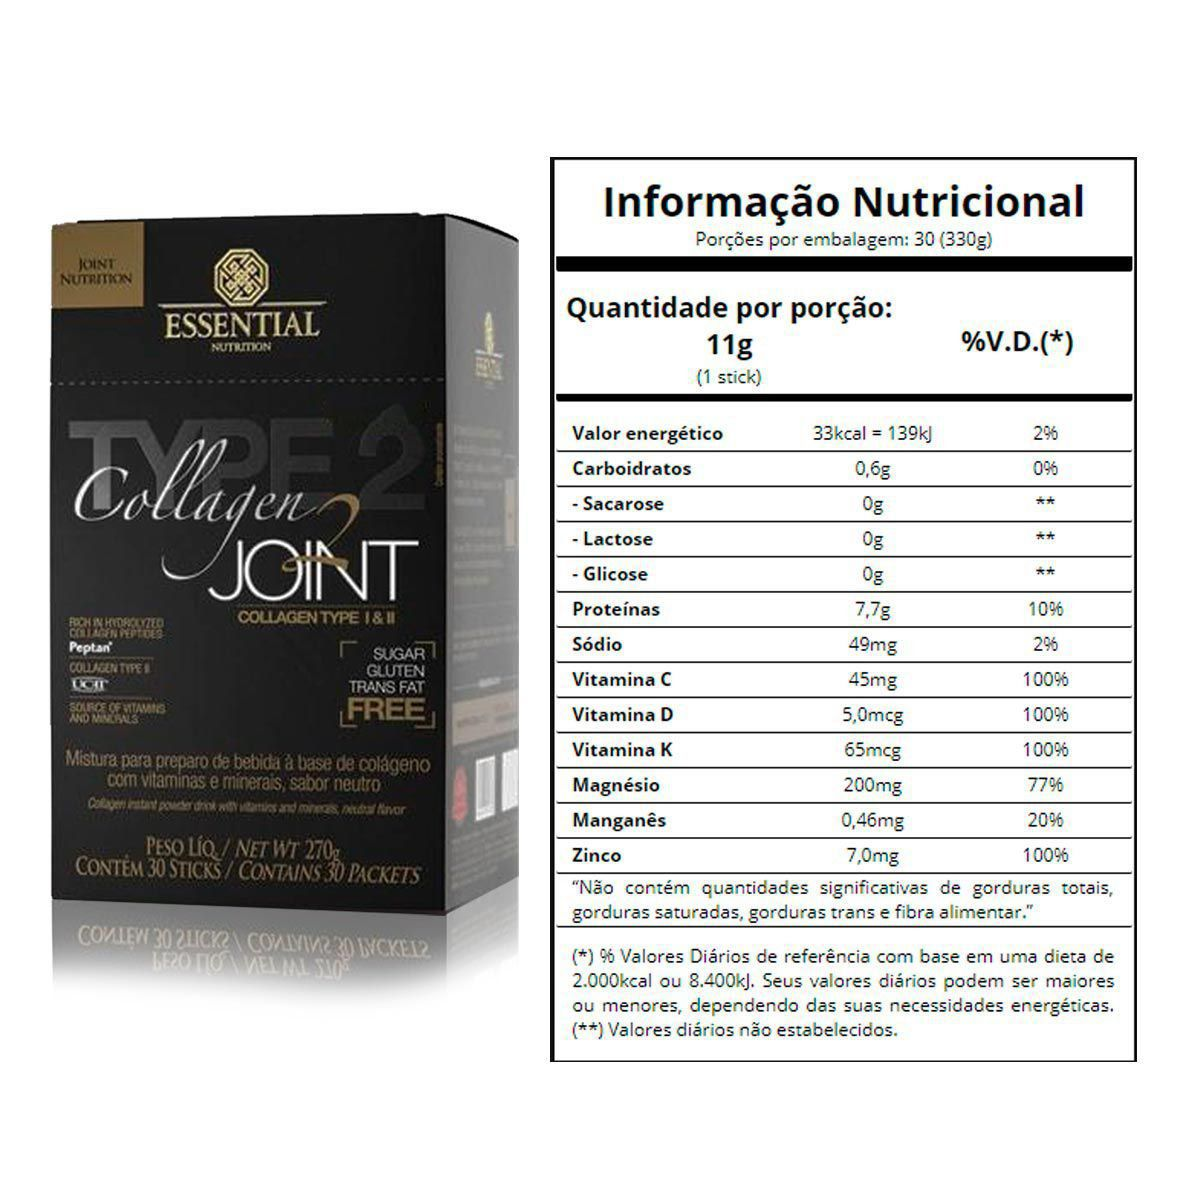 Collagen 2 JOINT NEUTRO 270g - Box c/ 30 unidades de 9g Essential nutrition